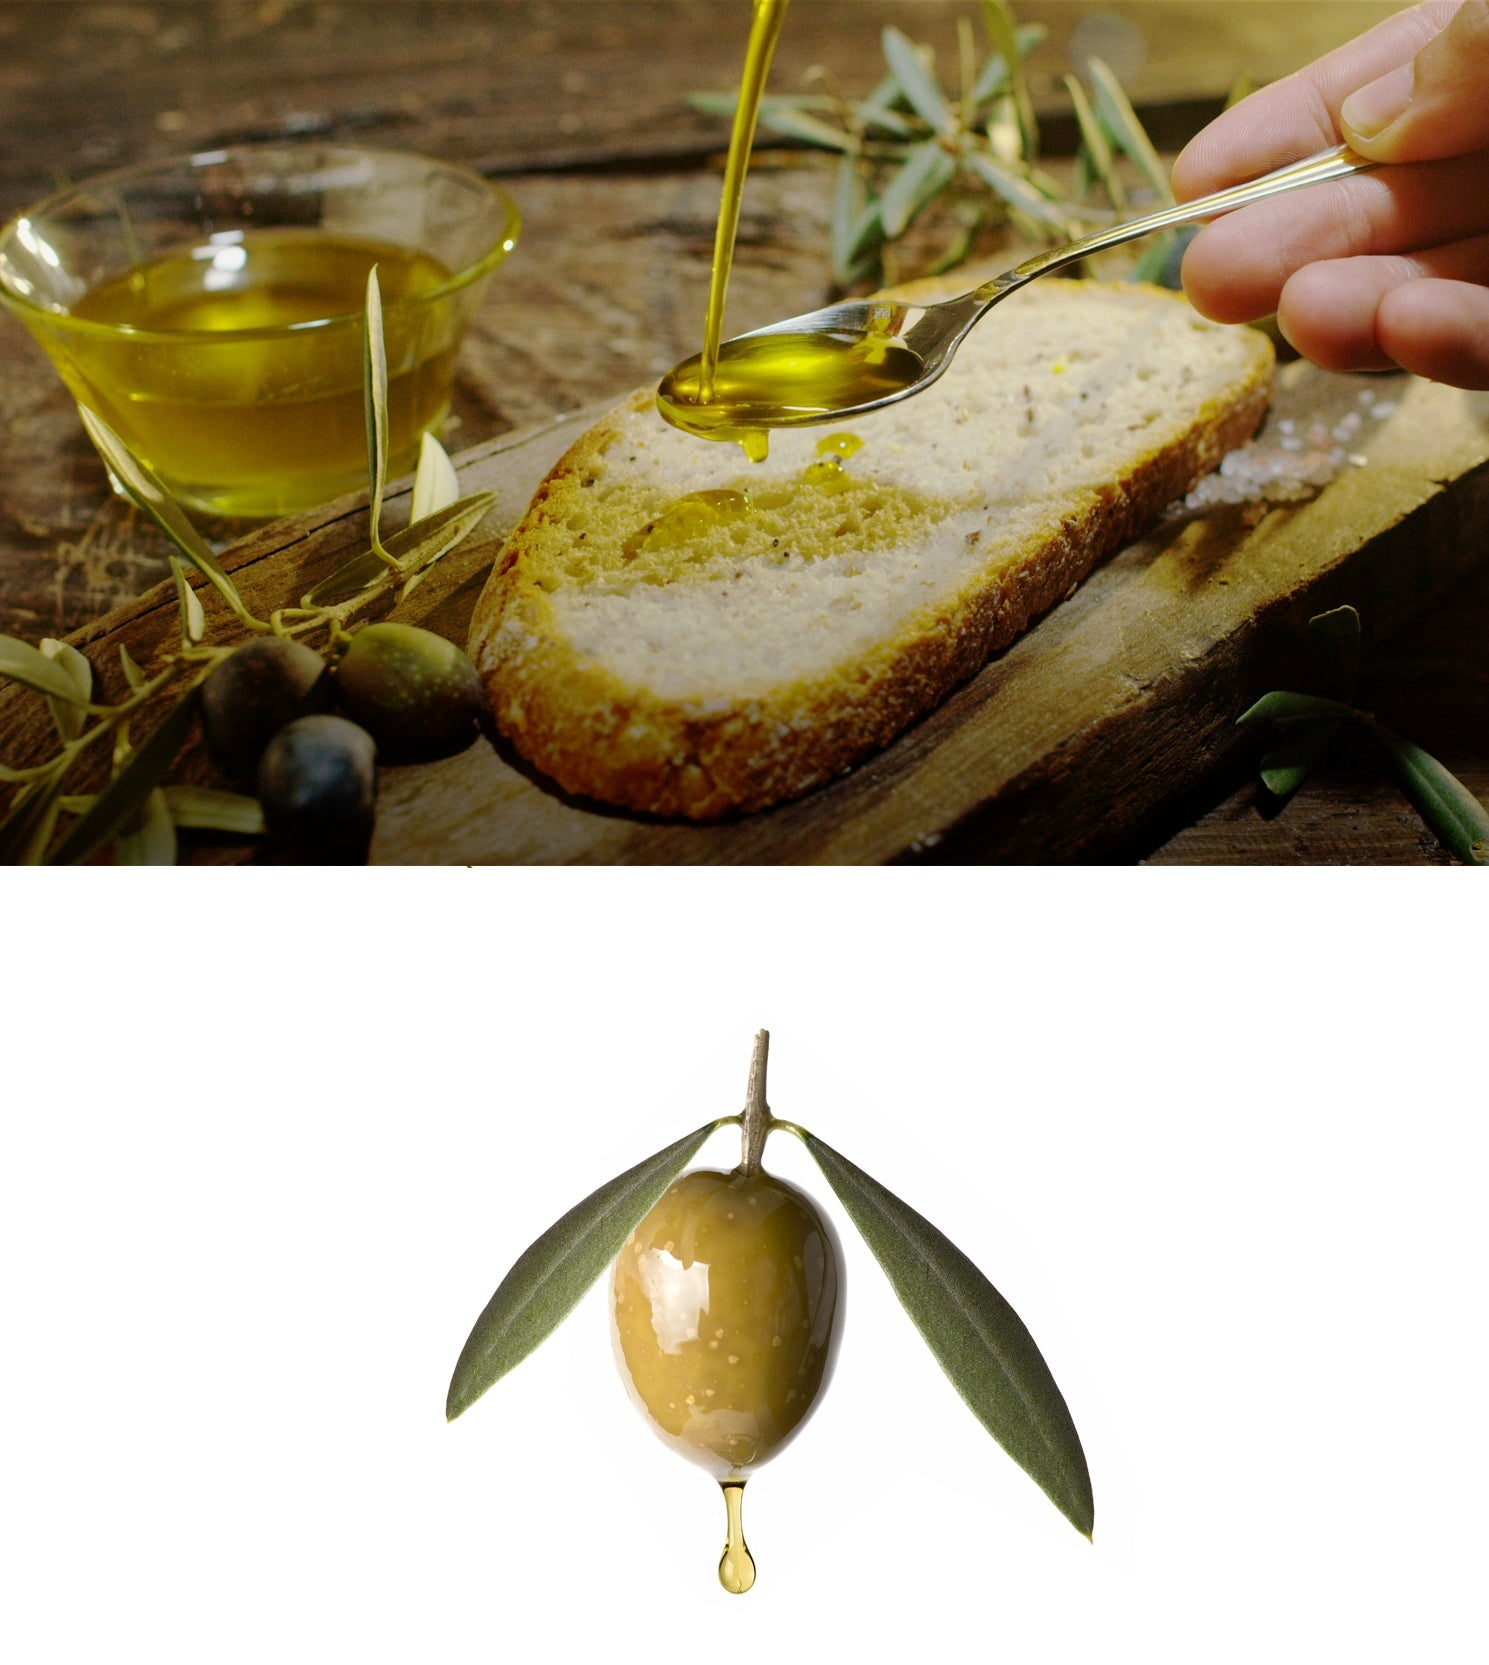 High Polyphenol and Squalene Olive Oil